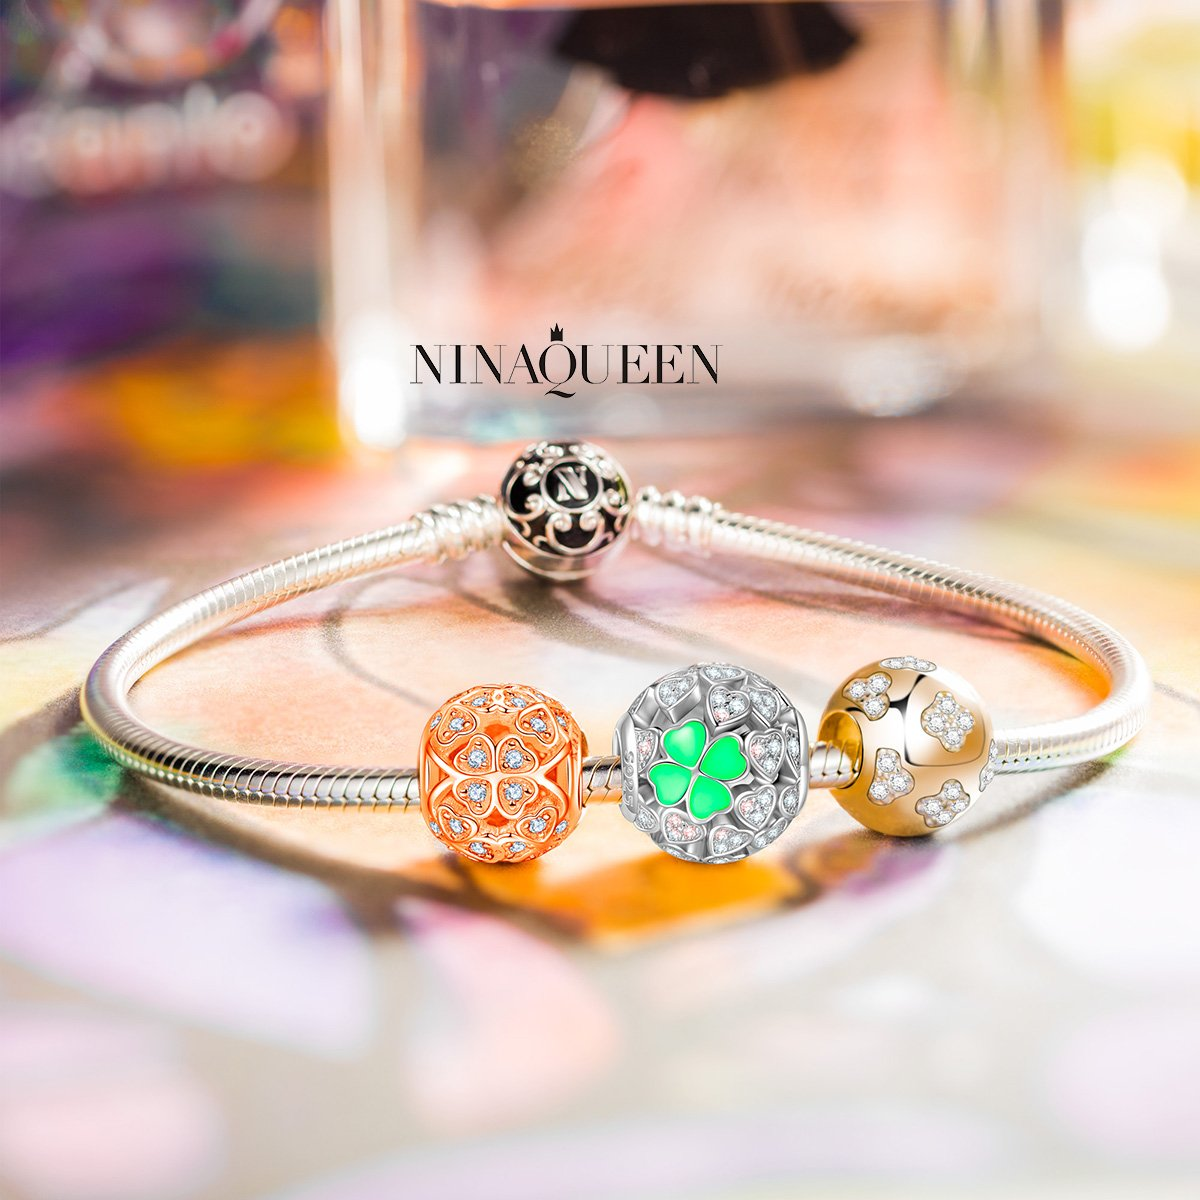 NINAQUEEN Lucky Clover Silver Heart Mint Clovers Openwork Bead Charms for Pandöra Bracelets Necklace Jewelry Making Birthday Anniversary Women Gifts for Her Wife Girlfriend Daughter Teen Girls Kids by NINAQUEEN (Image #4)